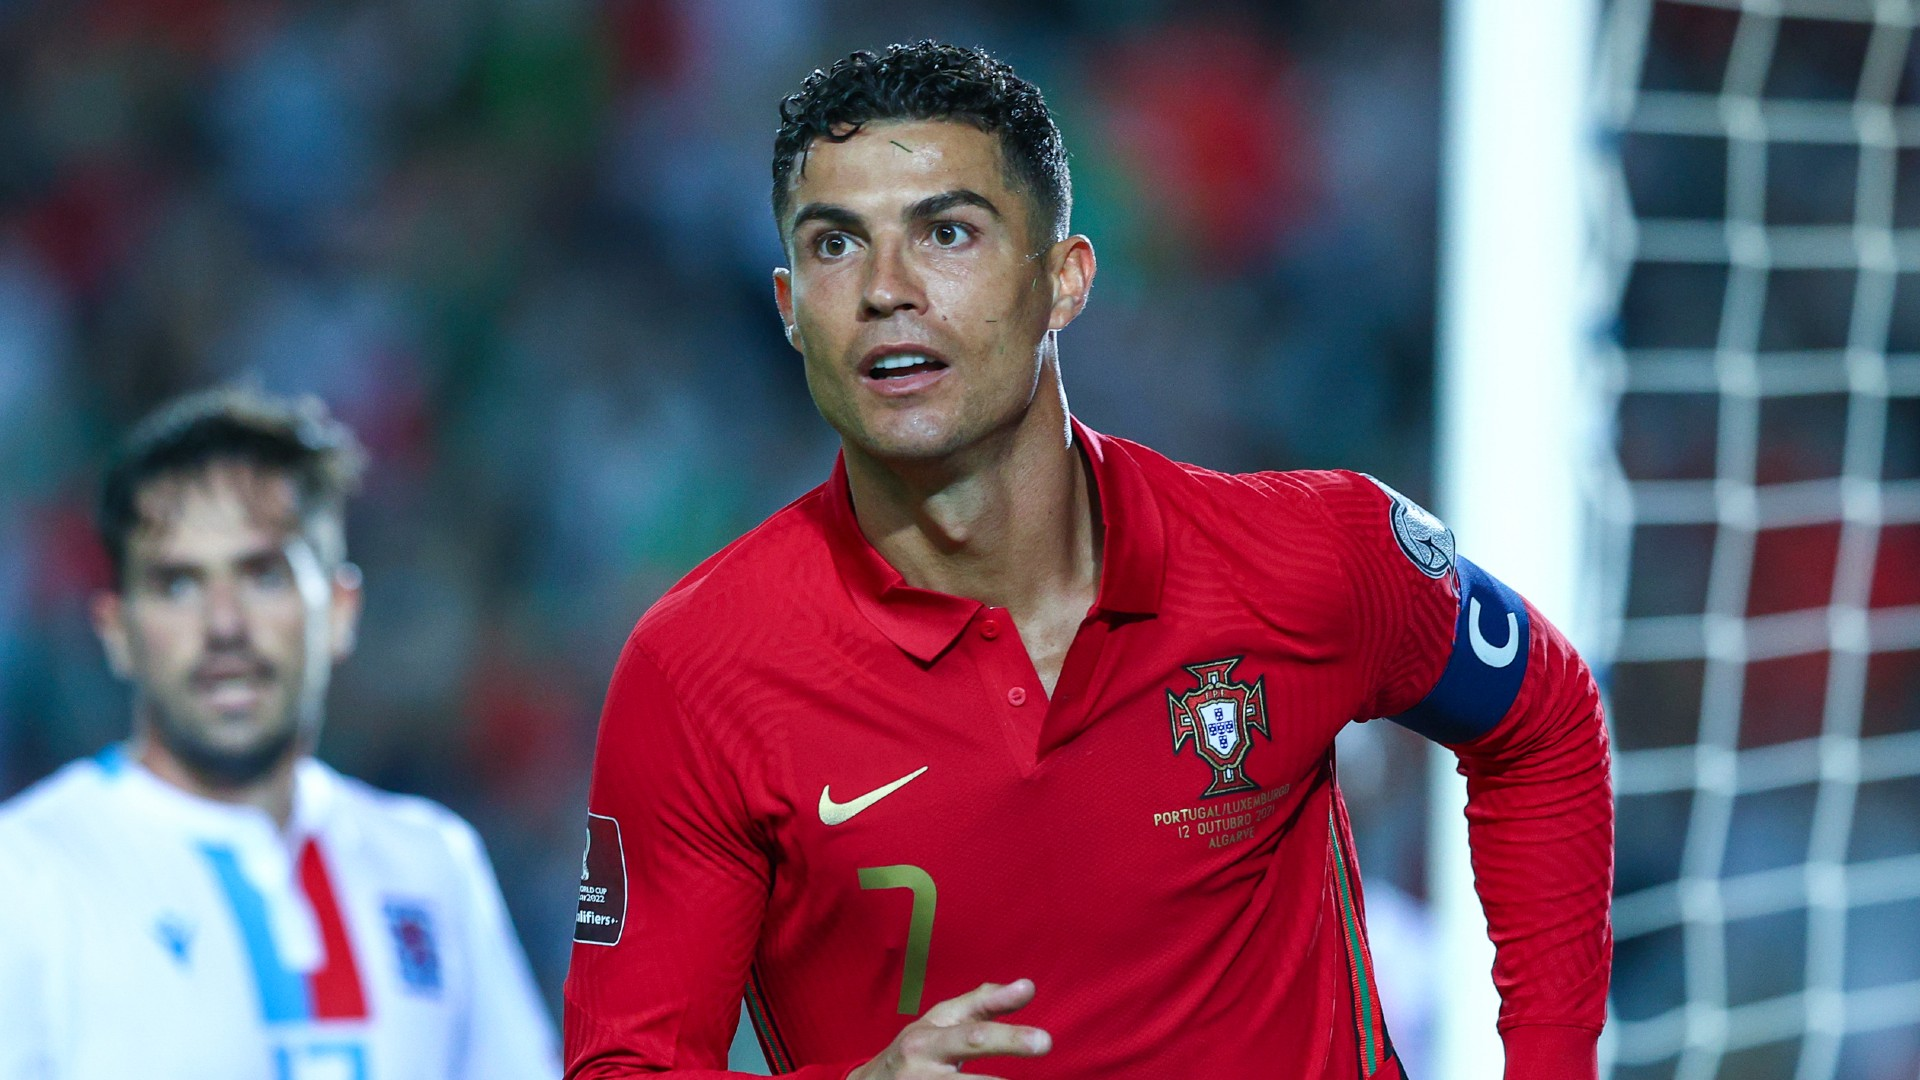 Ronaldo becomes the first men's player to score 10 international hat-tricks as Portugal thrash Luxembourg 5-0